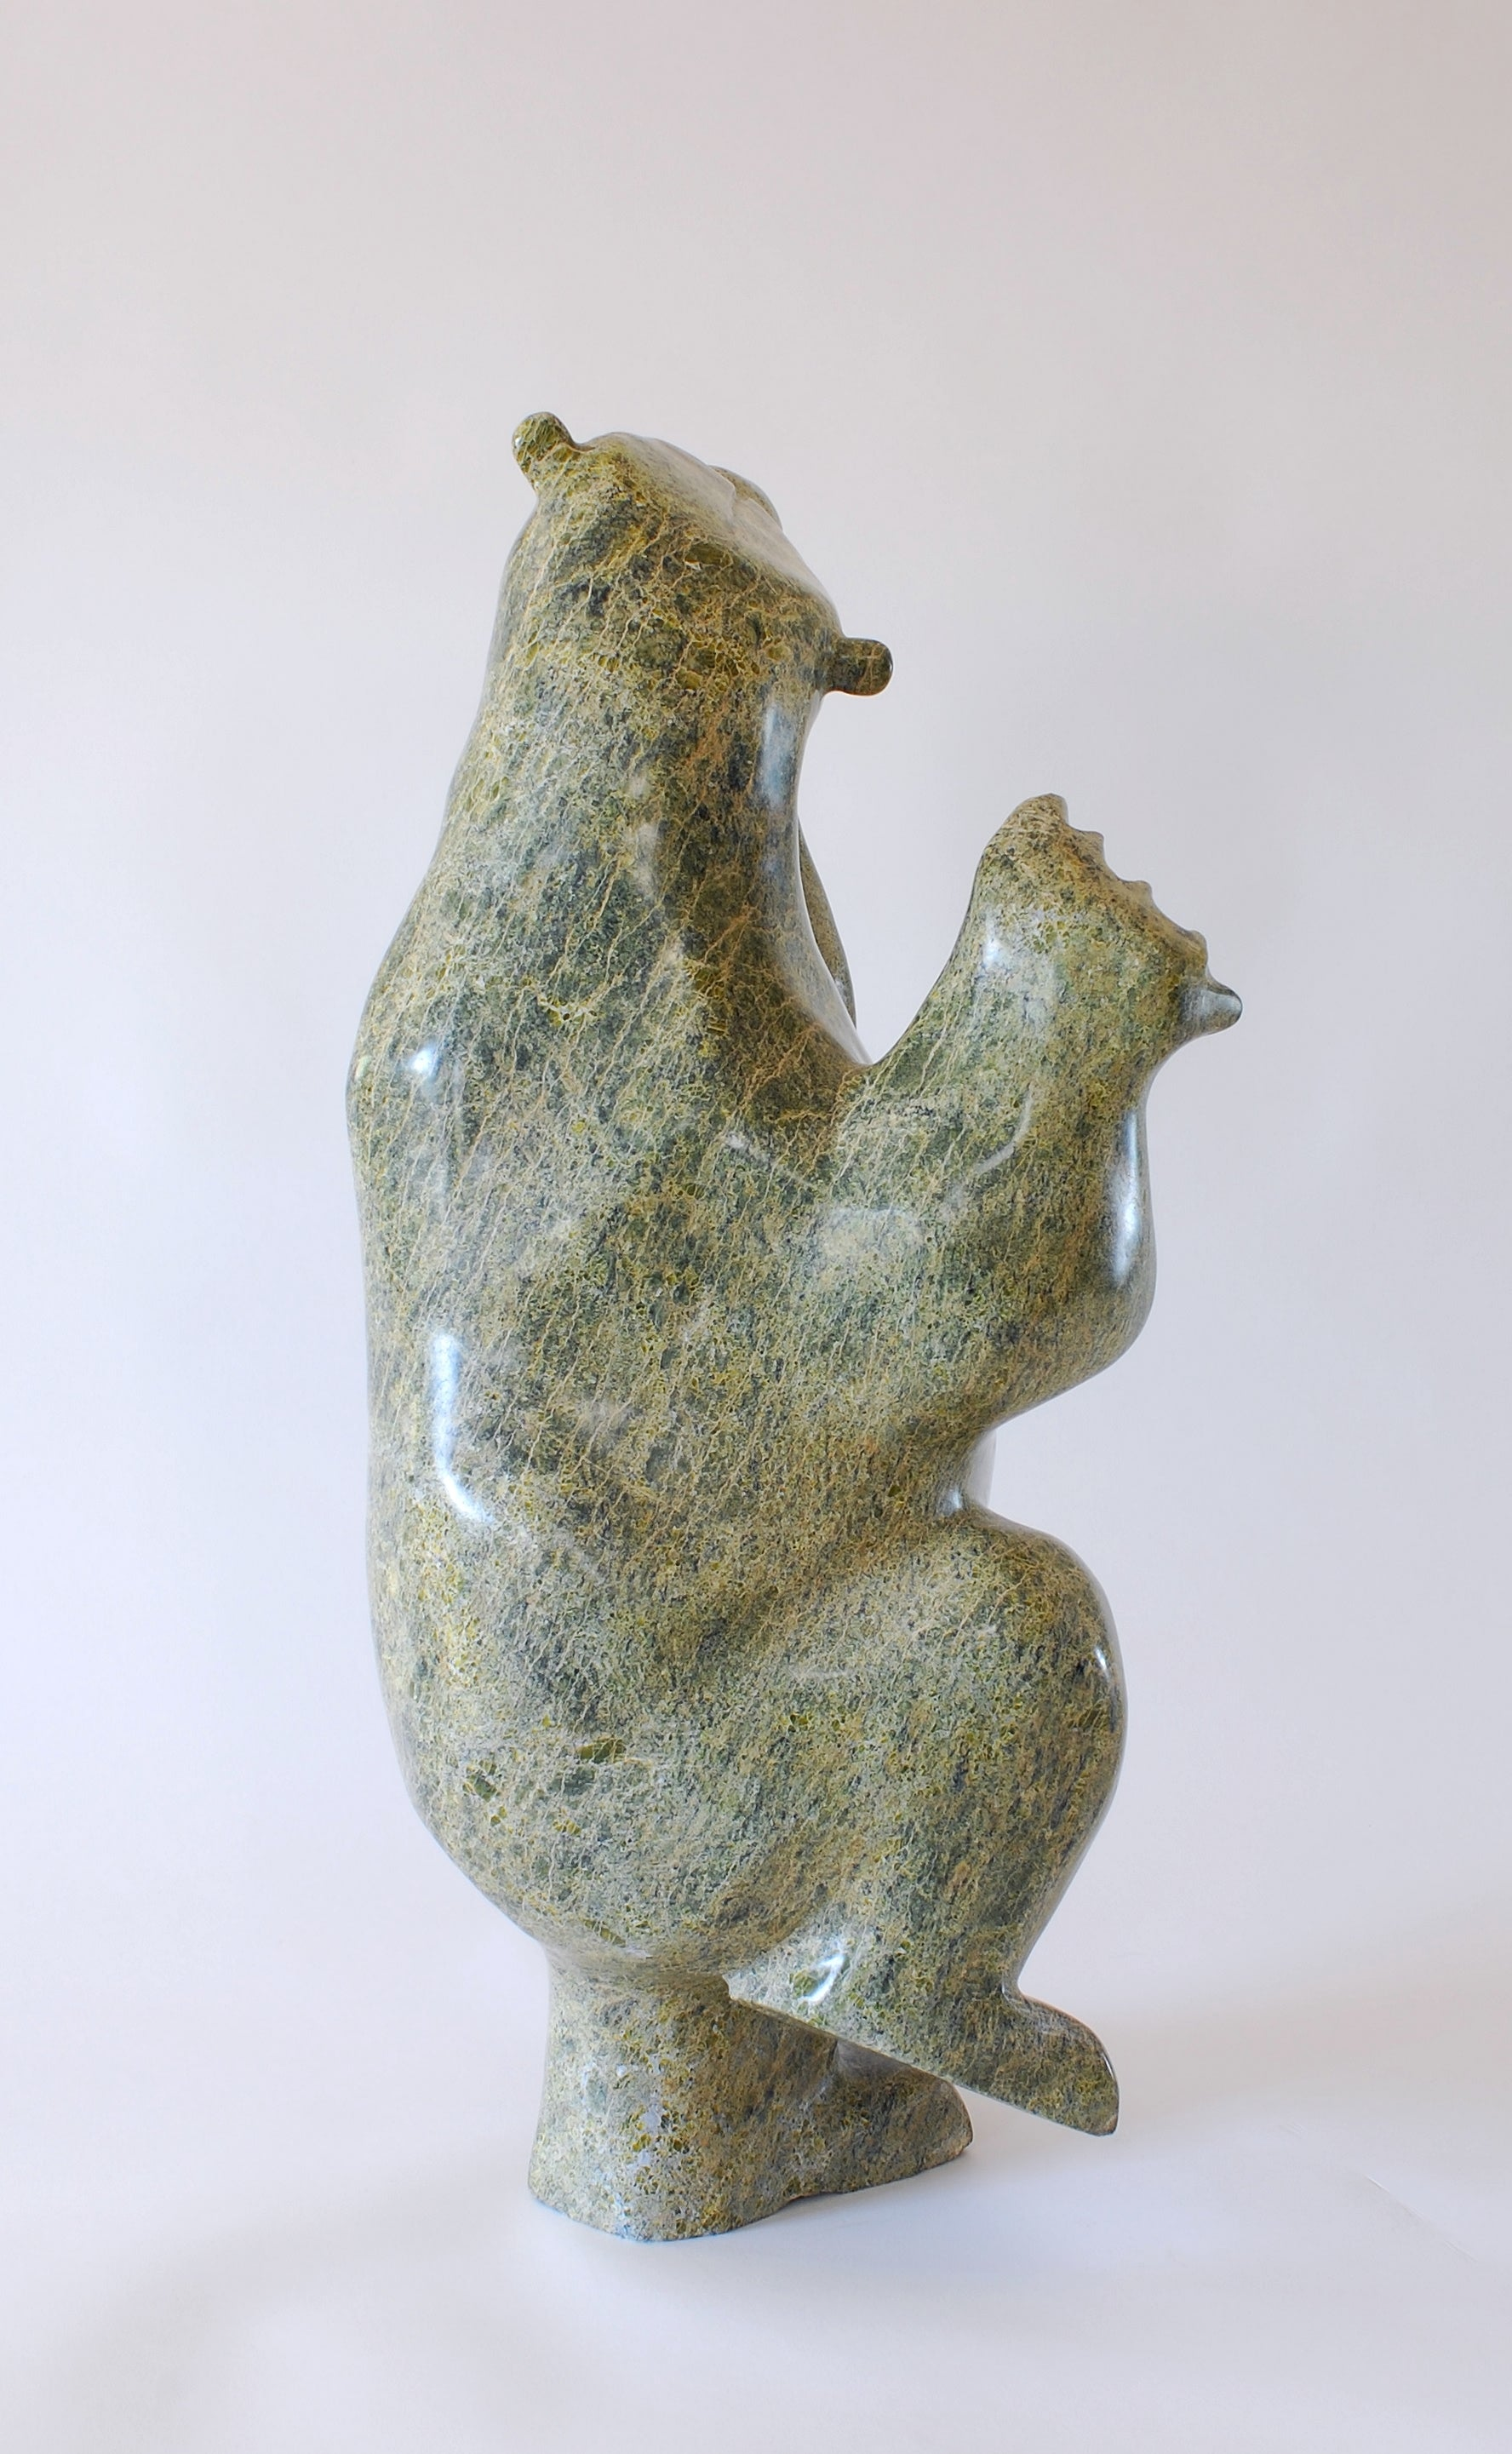 Dancing Bear by Enook Manomie, Iqaluit, c.1997